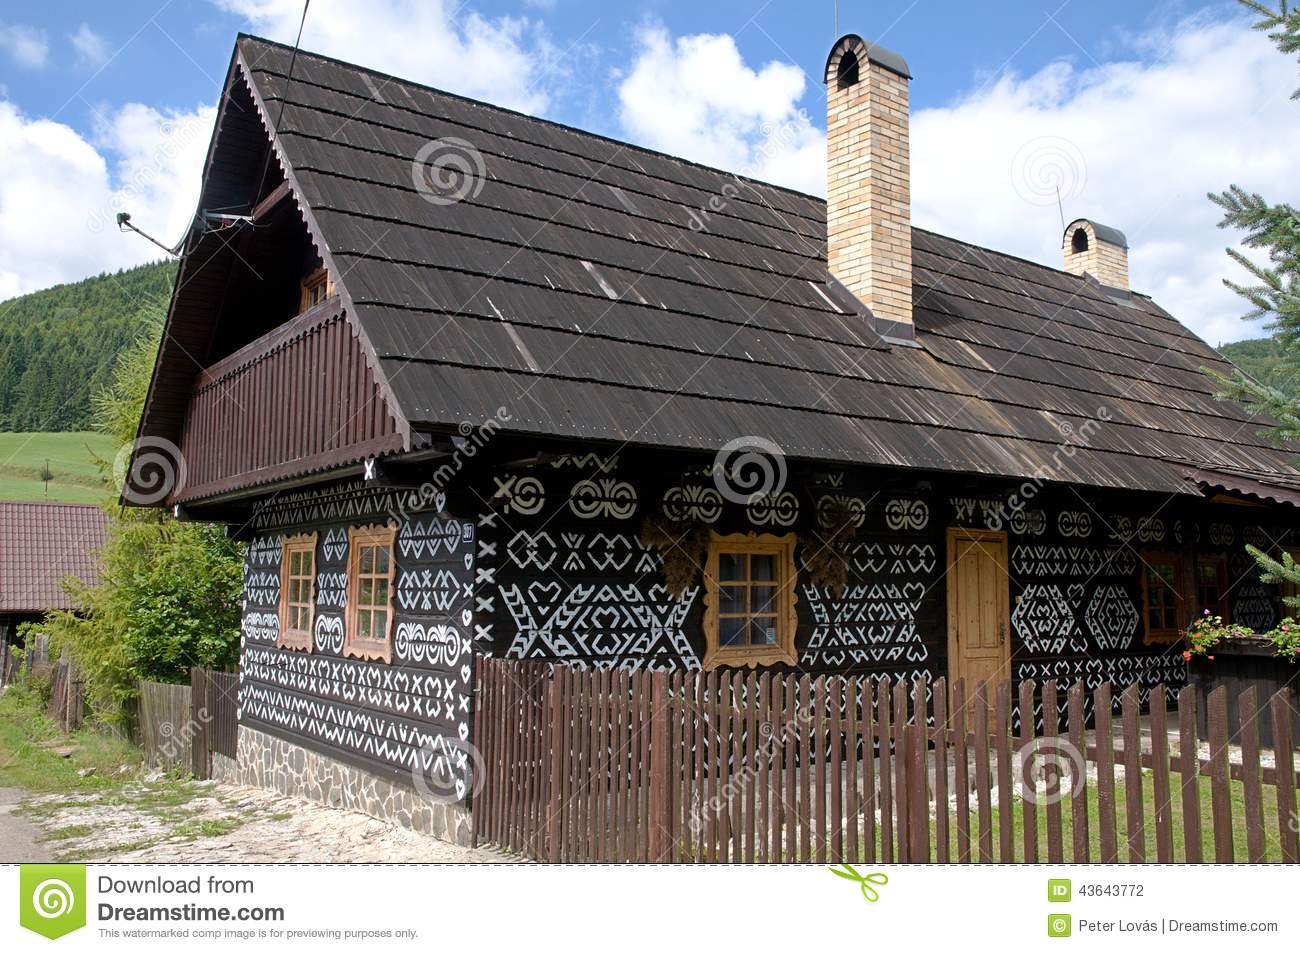 Editorial Photography Painted Wooden House Wooden Fence View Traditional Houses Cicmany Village Slovak Republic Image43643772 on Mountain Cottage House Plans